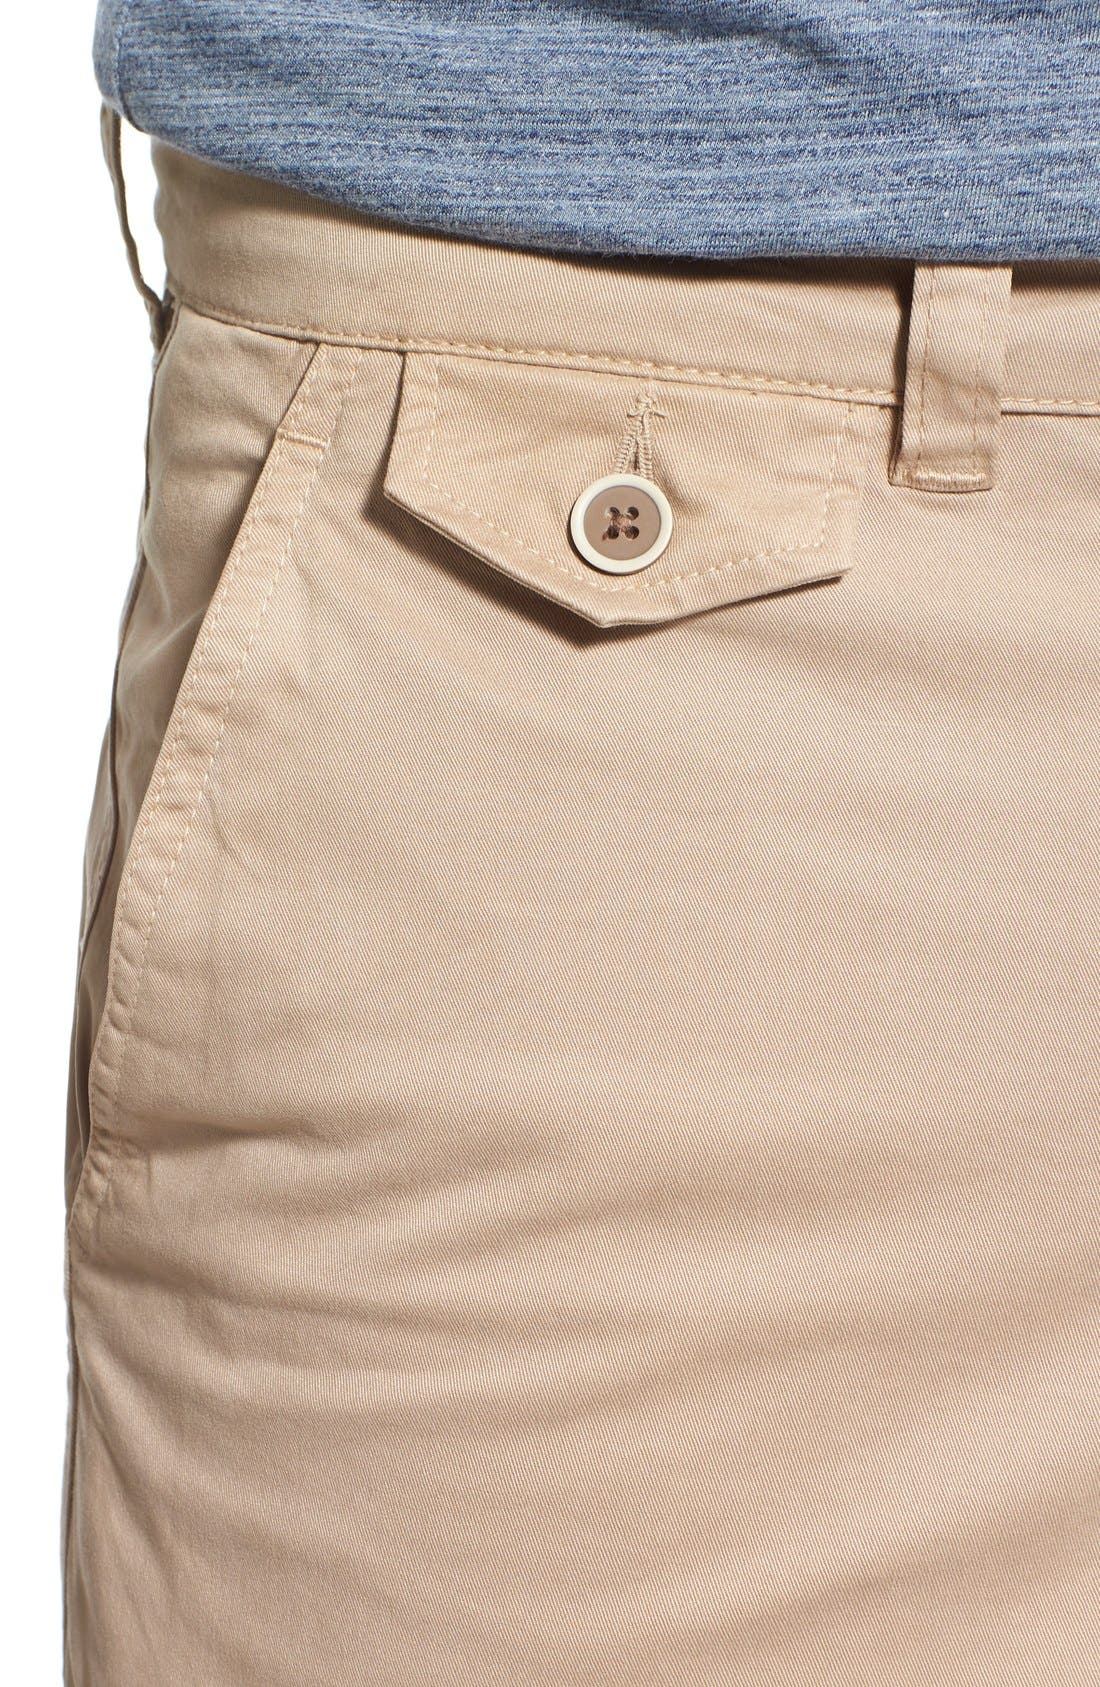 'Sunny' Stretch Twill Chino Shorts,                             Alternate thumbnail 5, color,                             Khaki